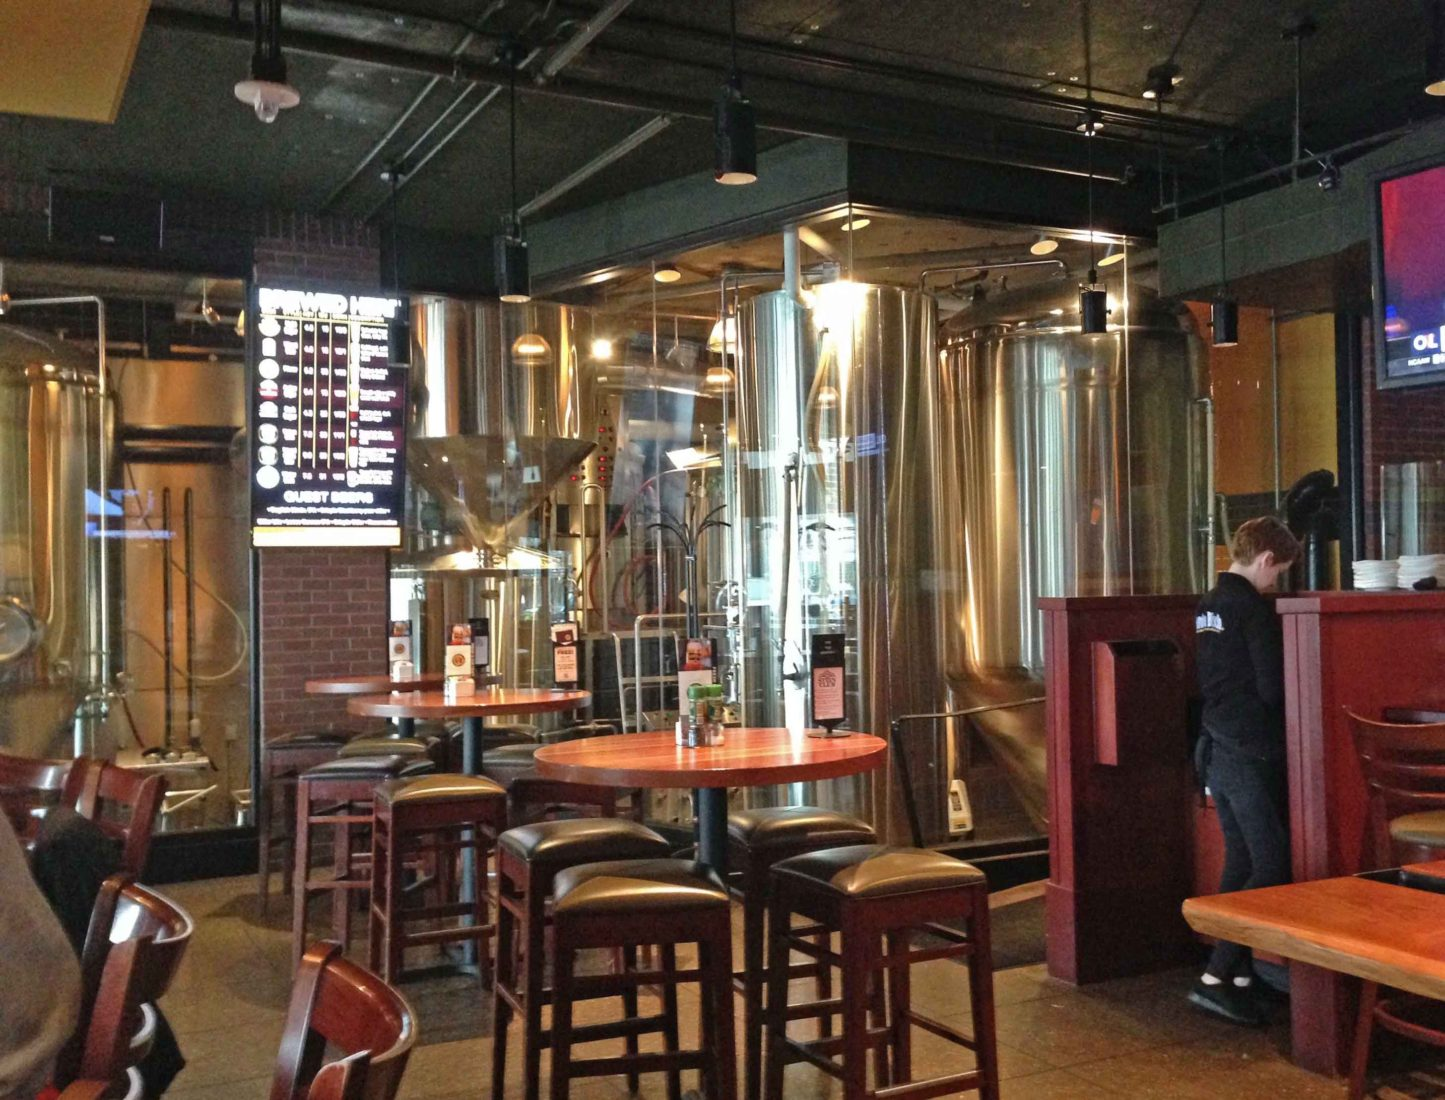 226. Gordon Biersch Brewery, Baltimore MD 2015